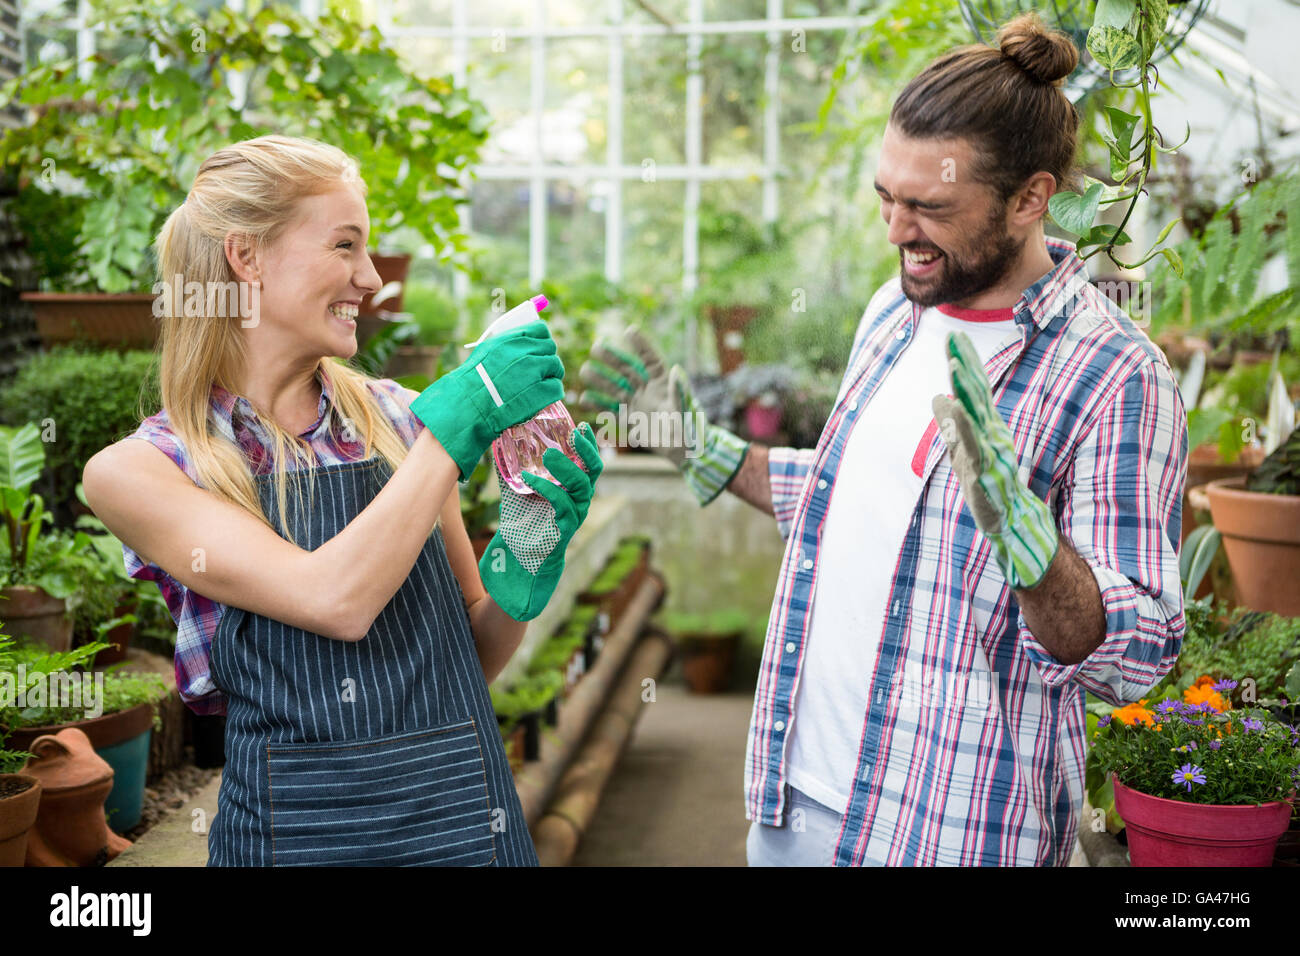 Cheerful gardener spraying water on colleague at greenhouse - Stock Image